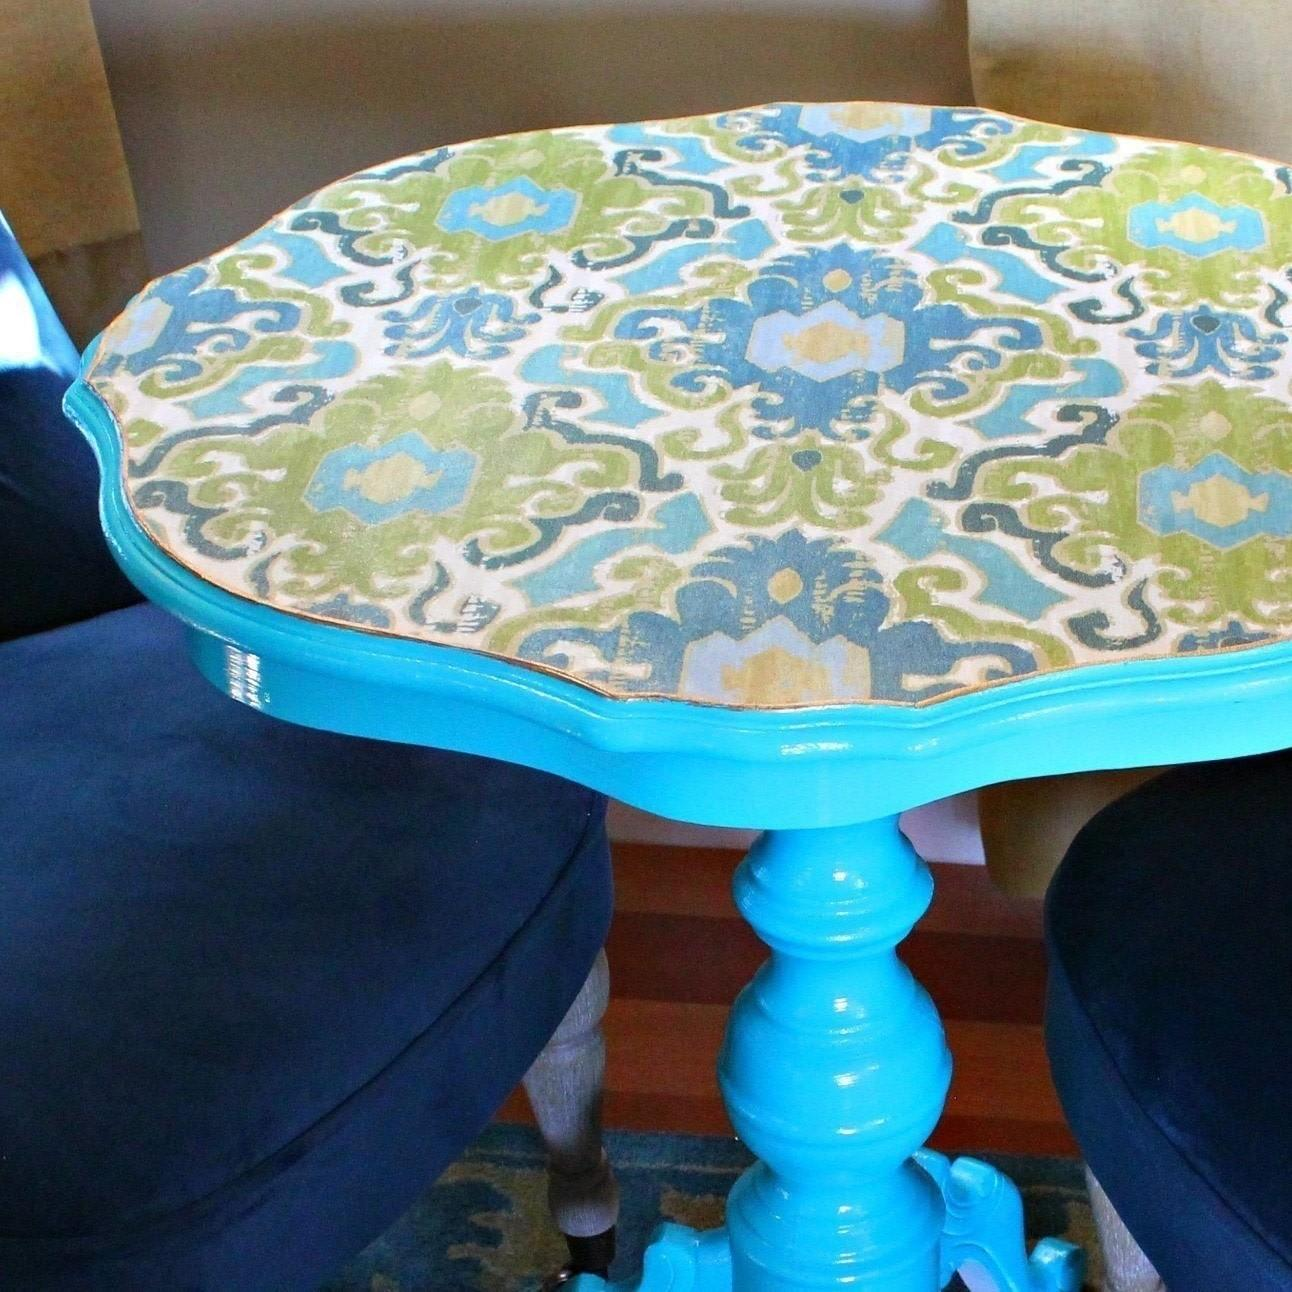 38 Extremely Beautiful Decoupaged Fabric Table Makeover That Look Like From A Fairy Tale For 2021 Photo Examples Decoratorist